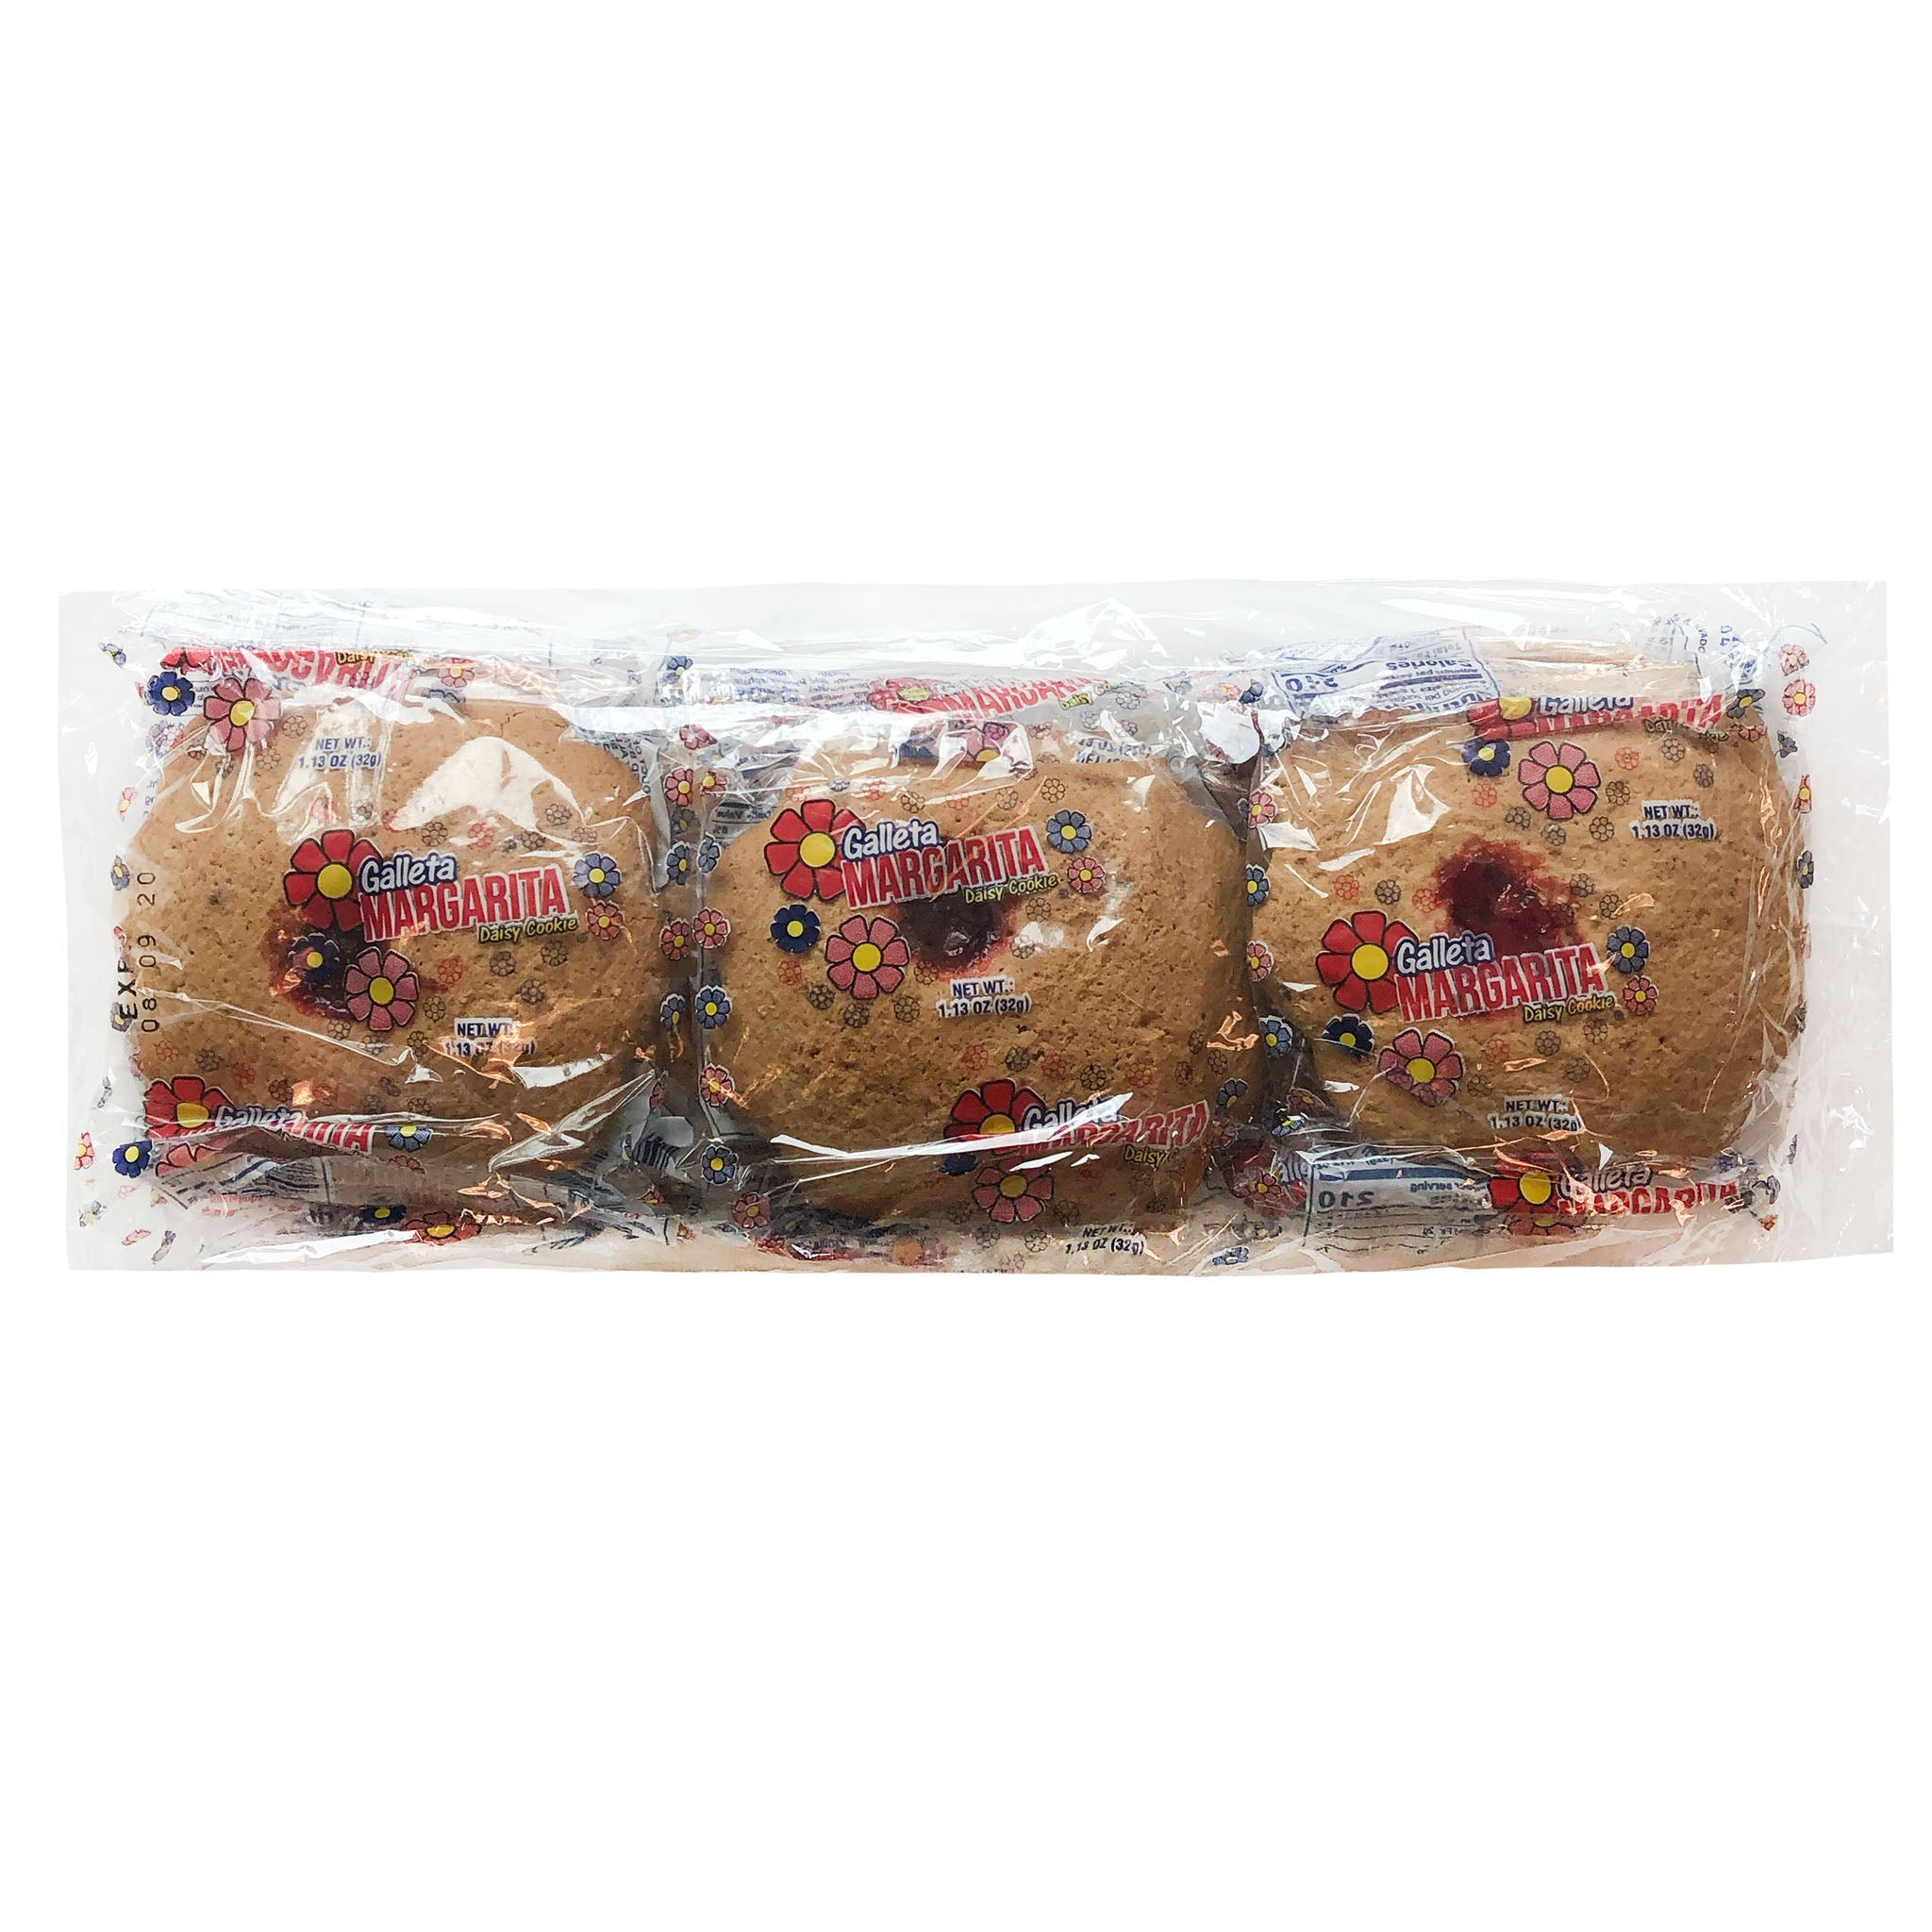 Galleta Margarita Daisy Cookie 16/6/2.77 oz / 7-Pack